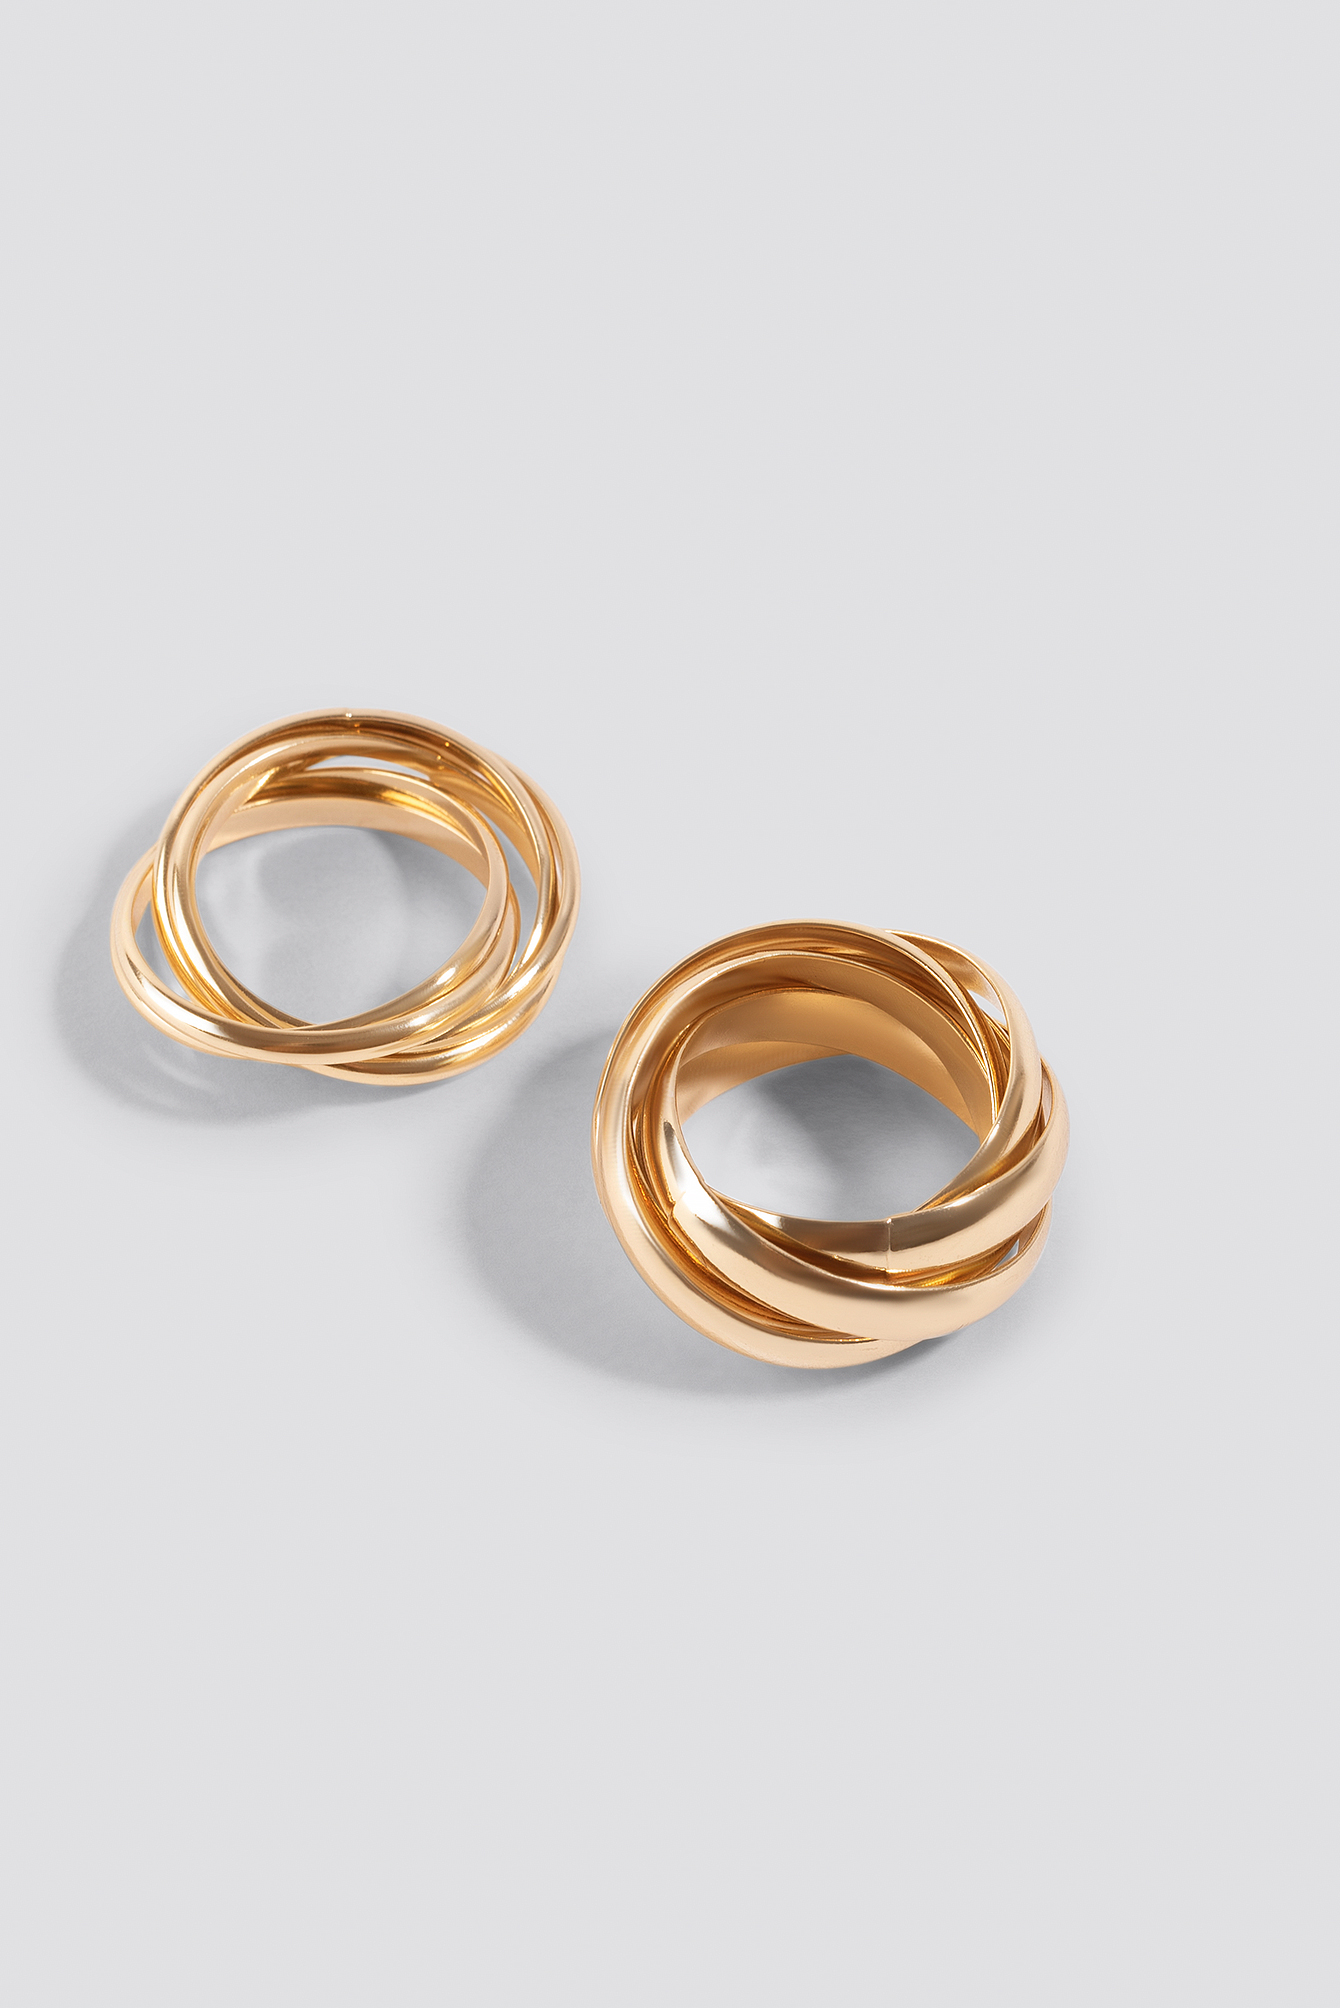 Gold Layered Rings (2-Pack)